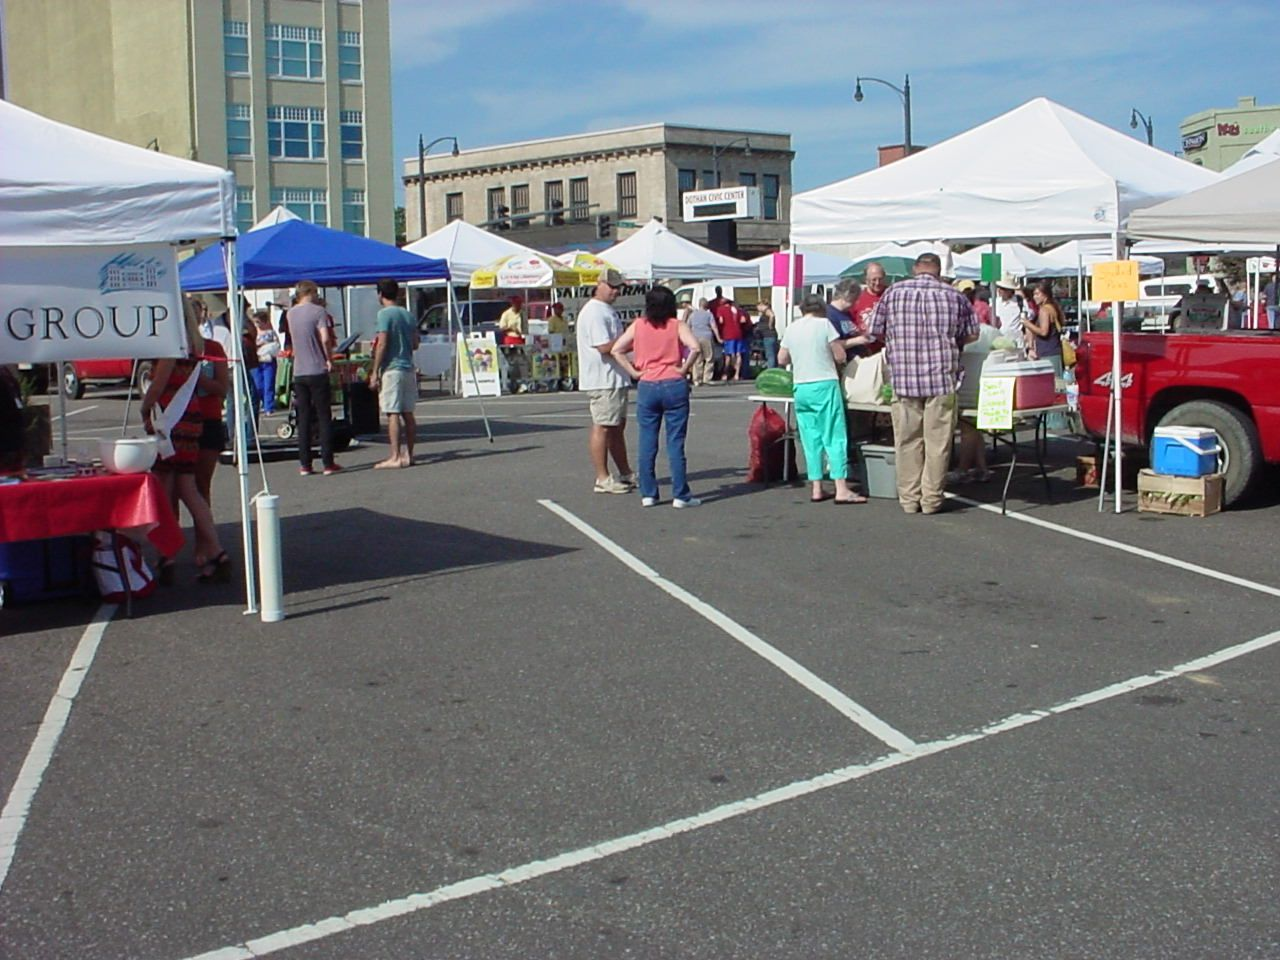 Open every Saturday in June and July from 8 until 12 with local produce and other vendors.